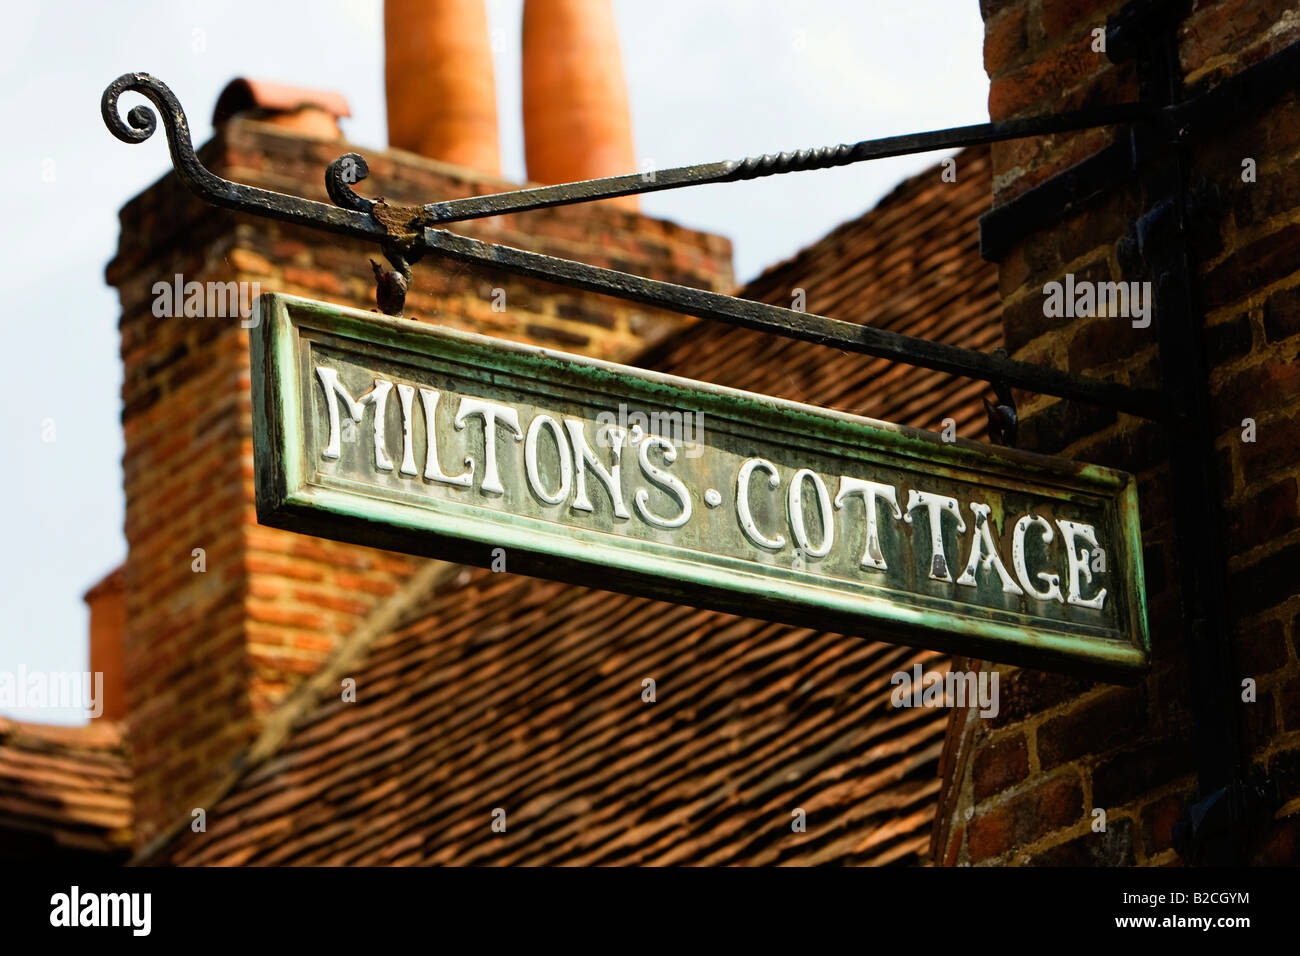 Milton s Cottage in the Buckinghamshire village of Chalfont St Giles England UK - Stock Image